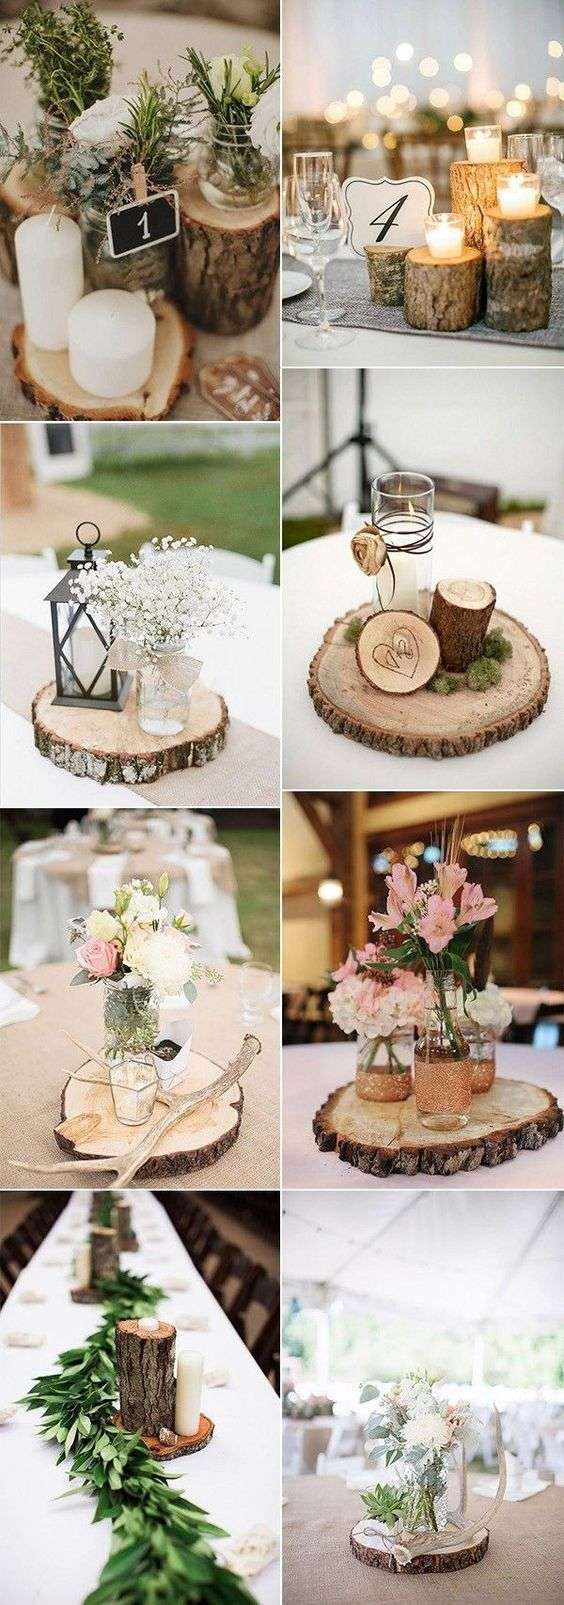 country rustic wedding centerpiece ideas with tree stumps #weddingideas #weddingdecor #rusticwedding #countrywedding #weddingcenterpiece #diyrusticweddingcenterpieces #DIYRusticWeddingflowers